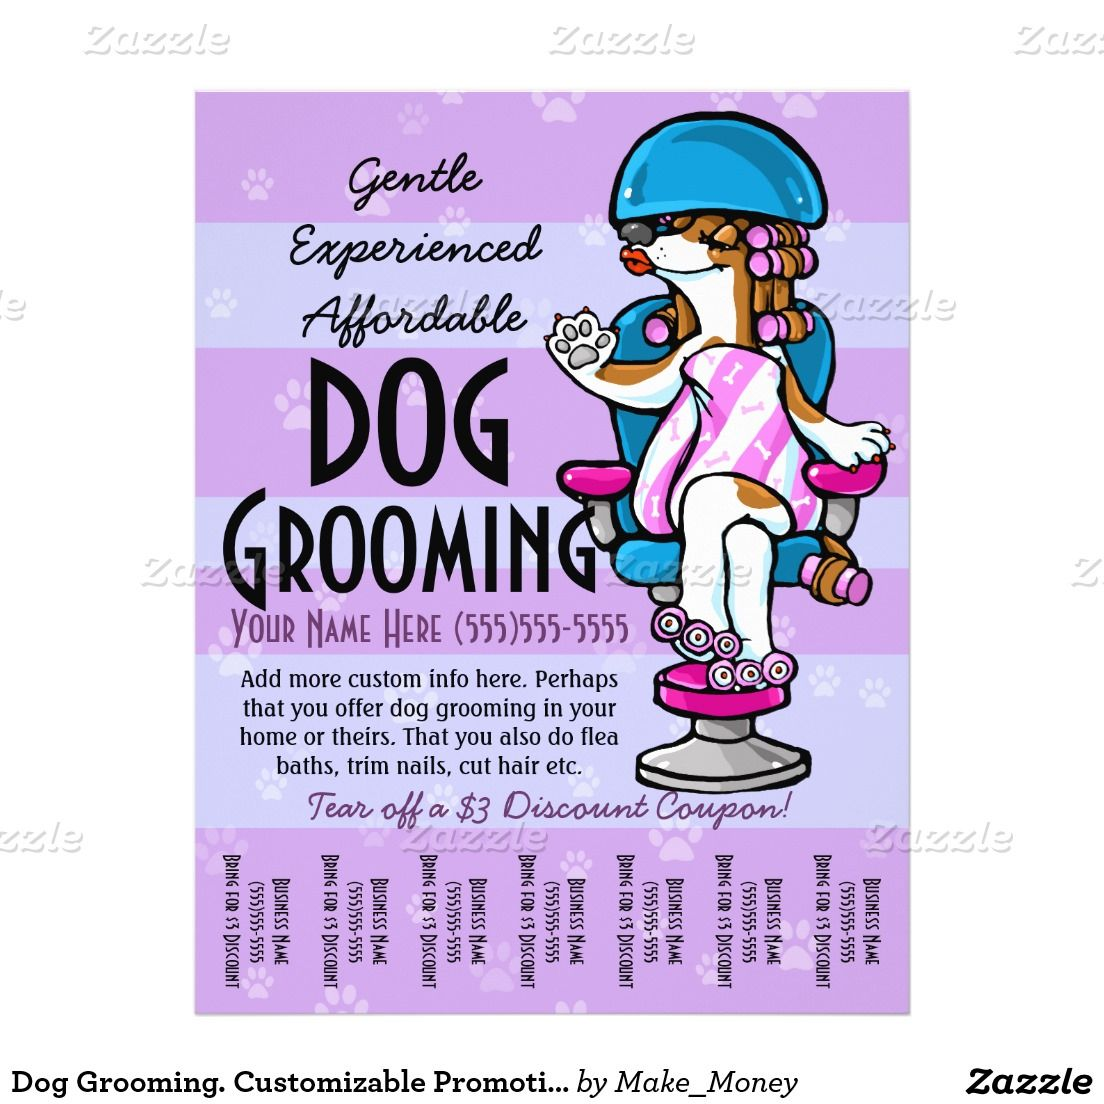 Dog Grooming Customizable Promotional Tear Sheet Zazzle